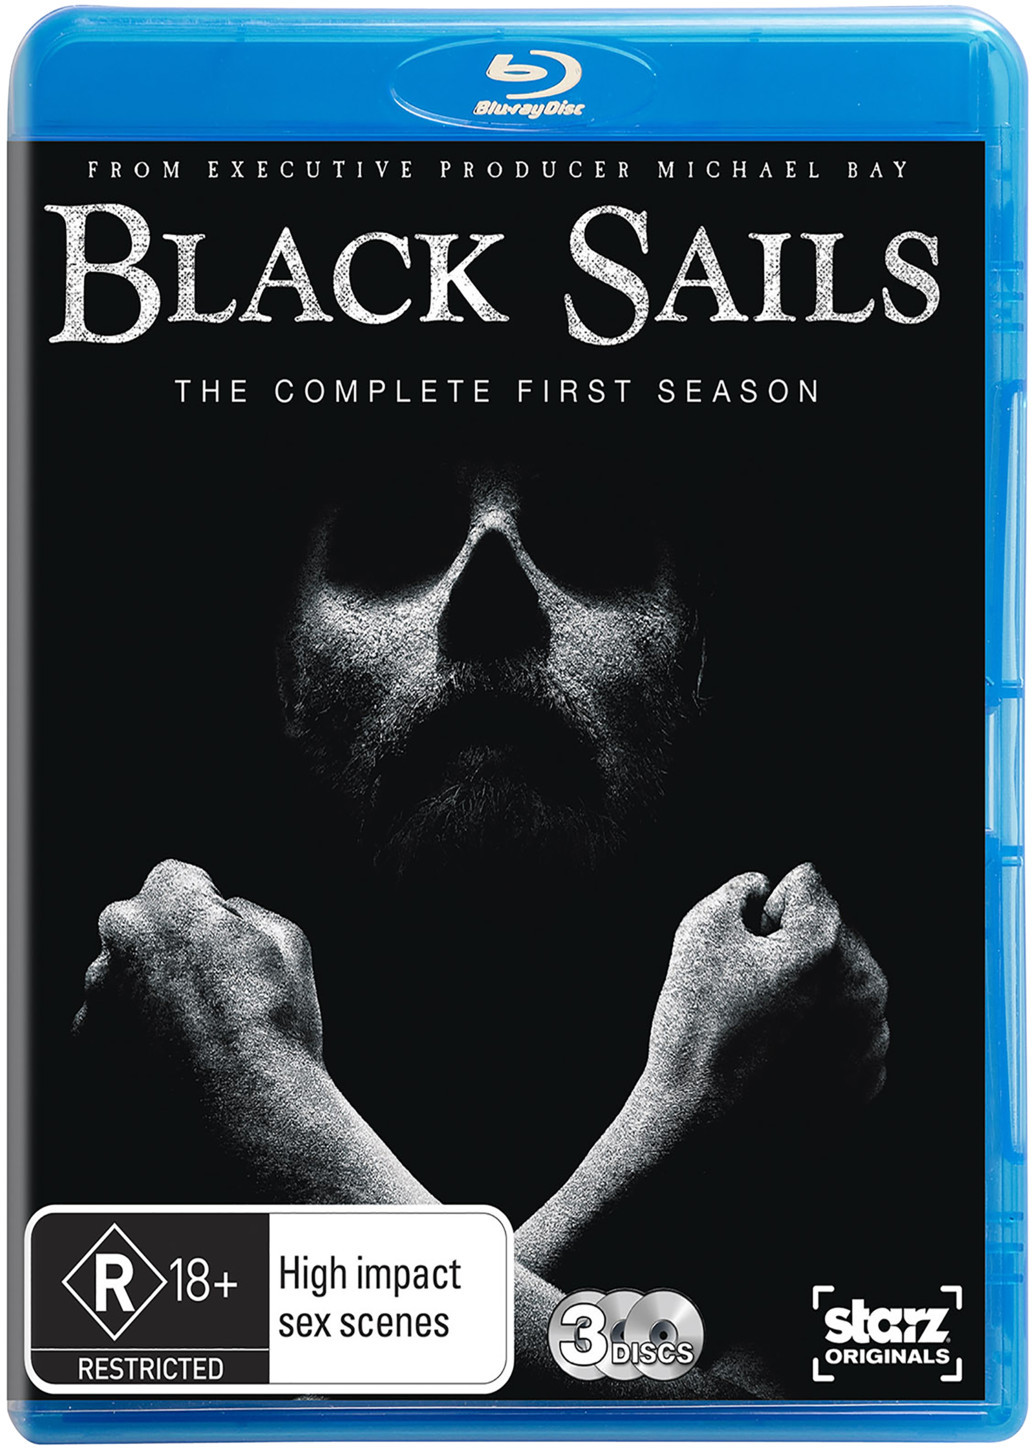 Black Sails - The Complete First Season on Blu-ray image